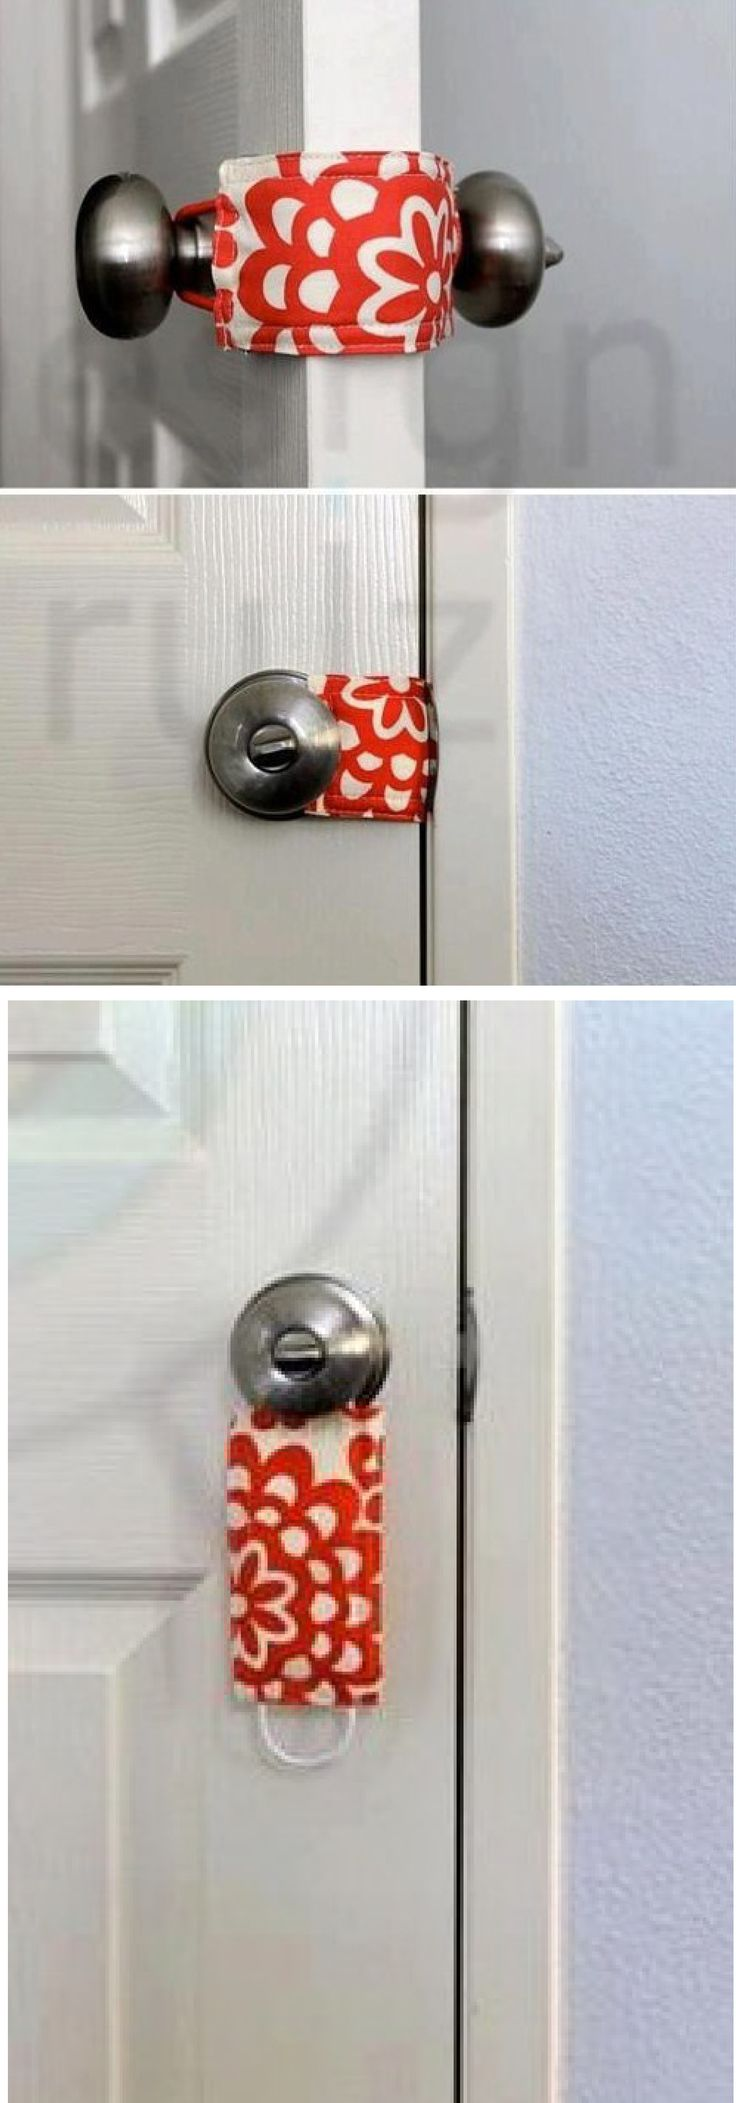 "Latch Stopper ... to keep the door quiet for nap times, to keep little ones from getting ""stuck"" in rooms ... etc., etc., etc.  No link to instructions.  I am assuming simply sew two pieces of fabric together with a pony tail holder (elastic band) sewn into each end."